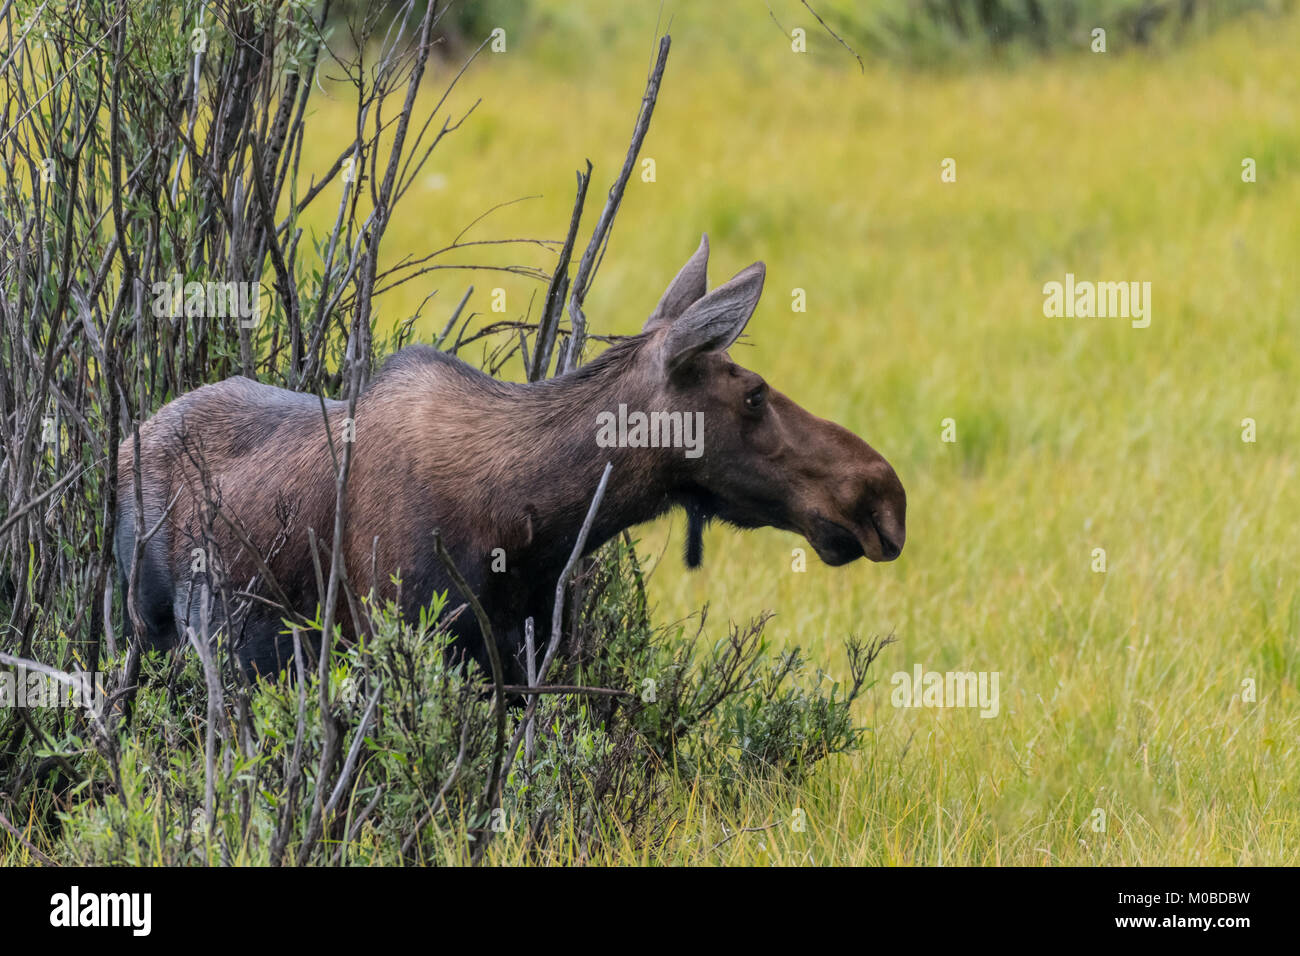 Female Moose Emerges from Willow into Grassy Field - Stock Image